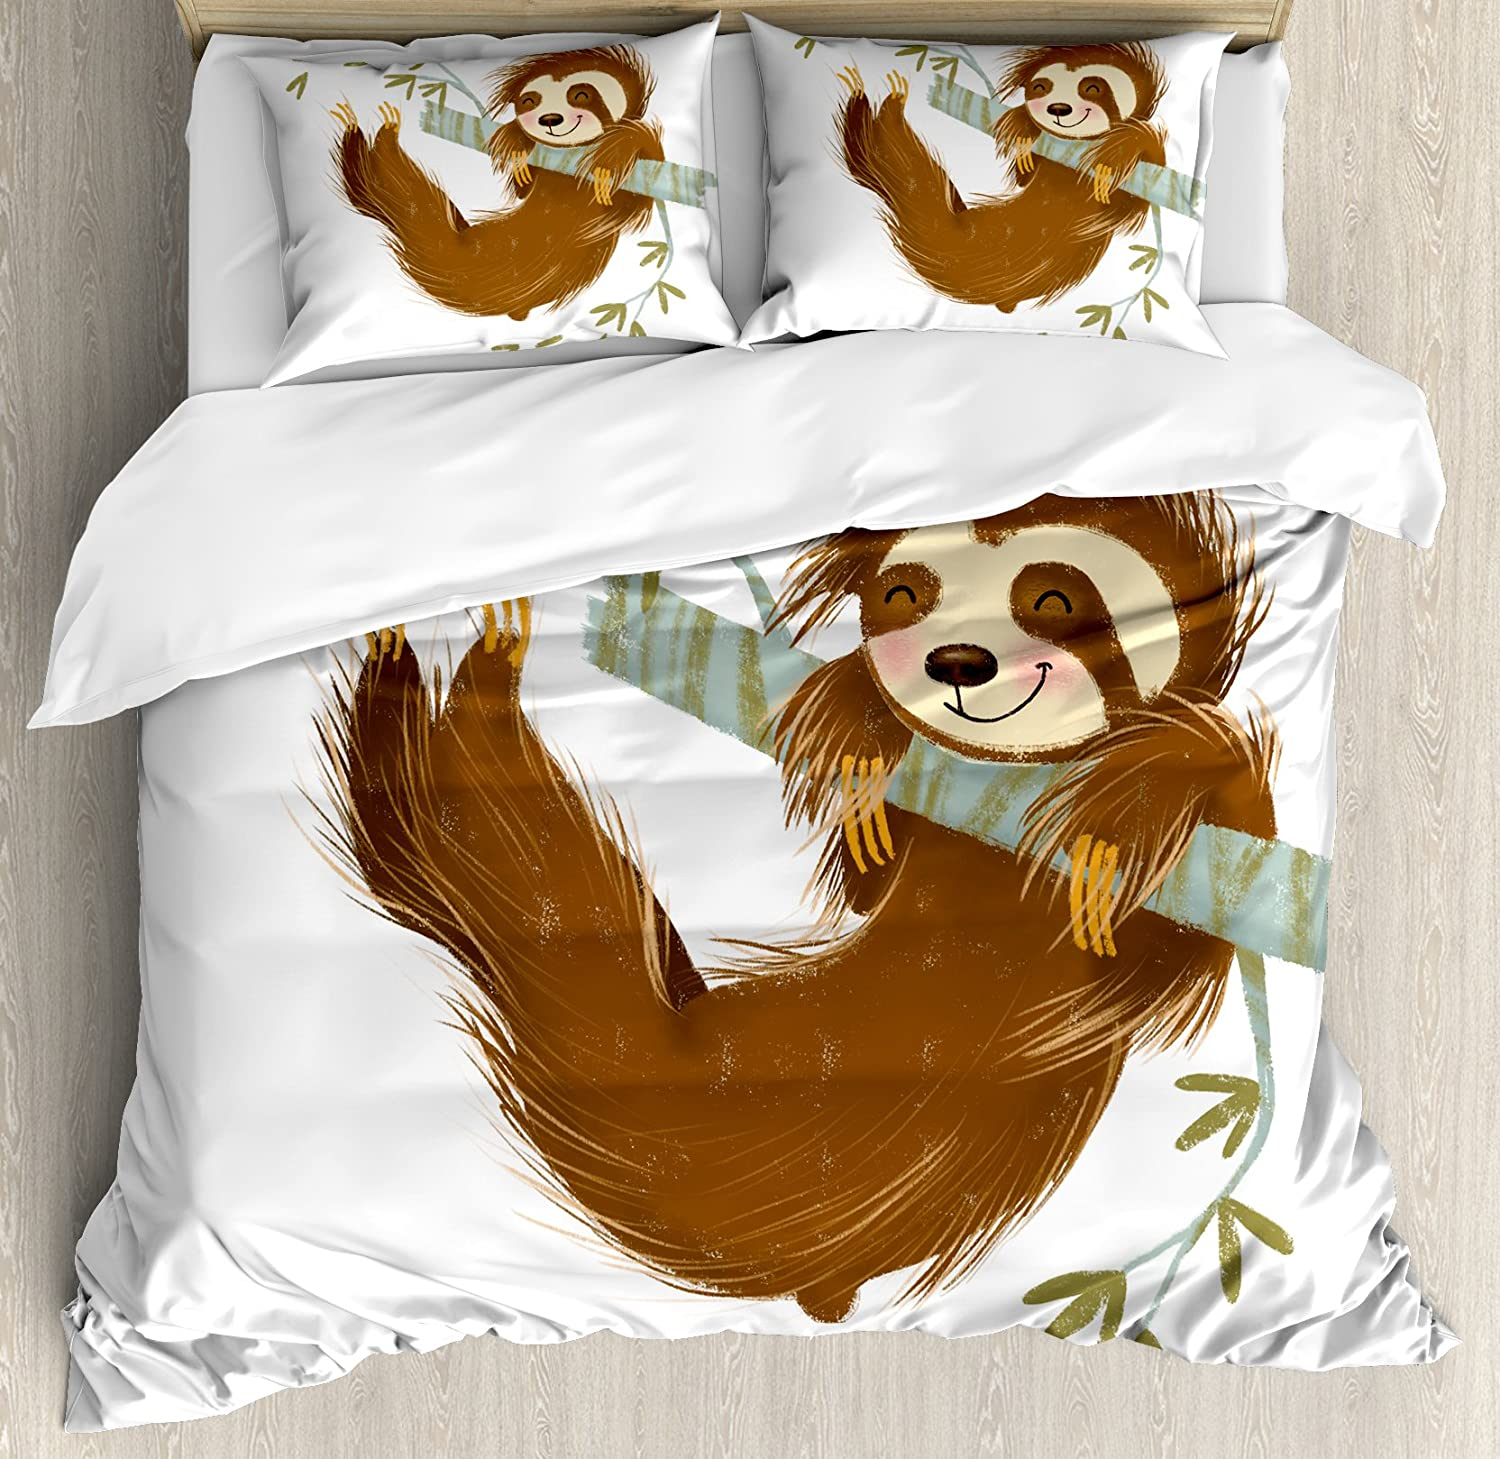 Ambesonne Sloth Duvet Cover Set, Happy Cheerful Animal Swinging on Tree Branch Hand Drawn Cartoon Illustration, Decorative 3 Piece Bedding Set with 2 Pillow Shams, Queen Size, Brown Khaki